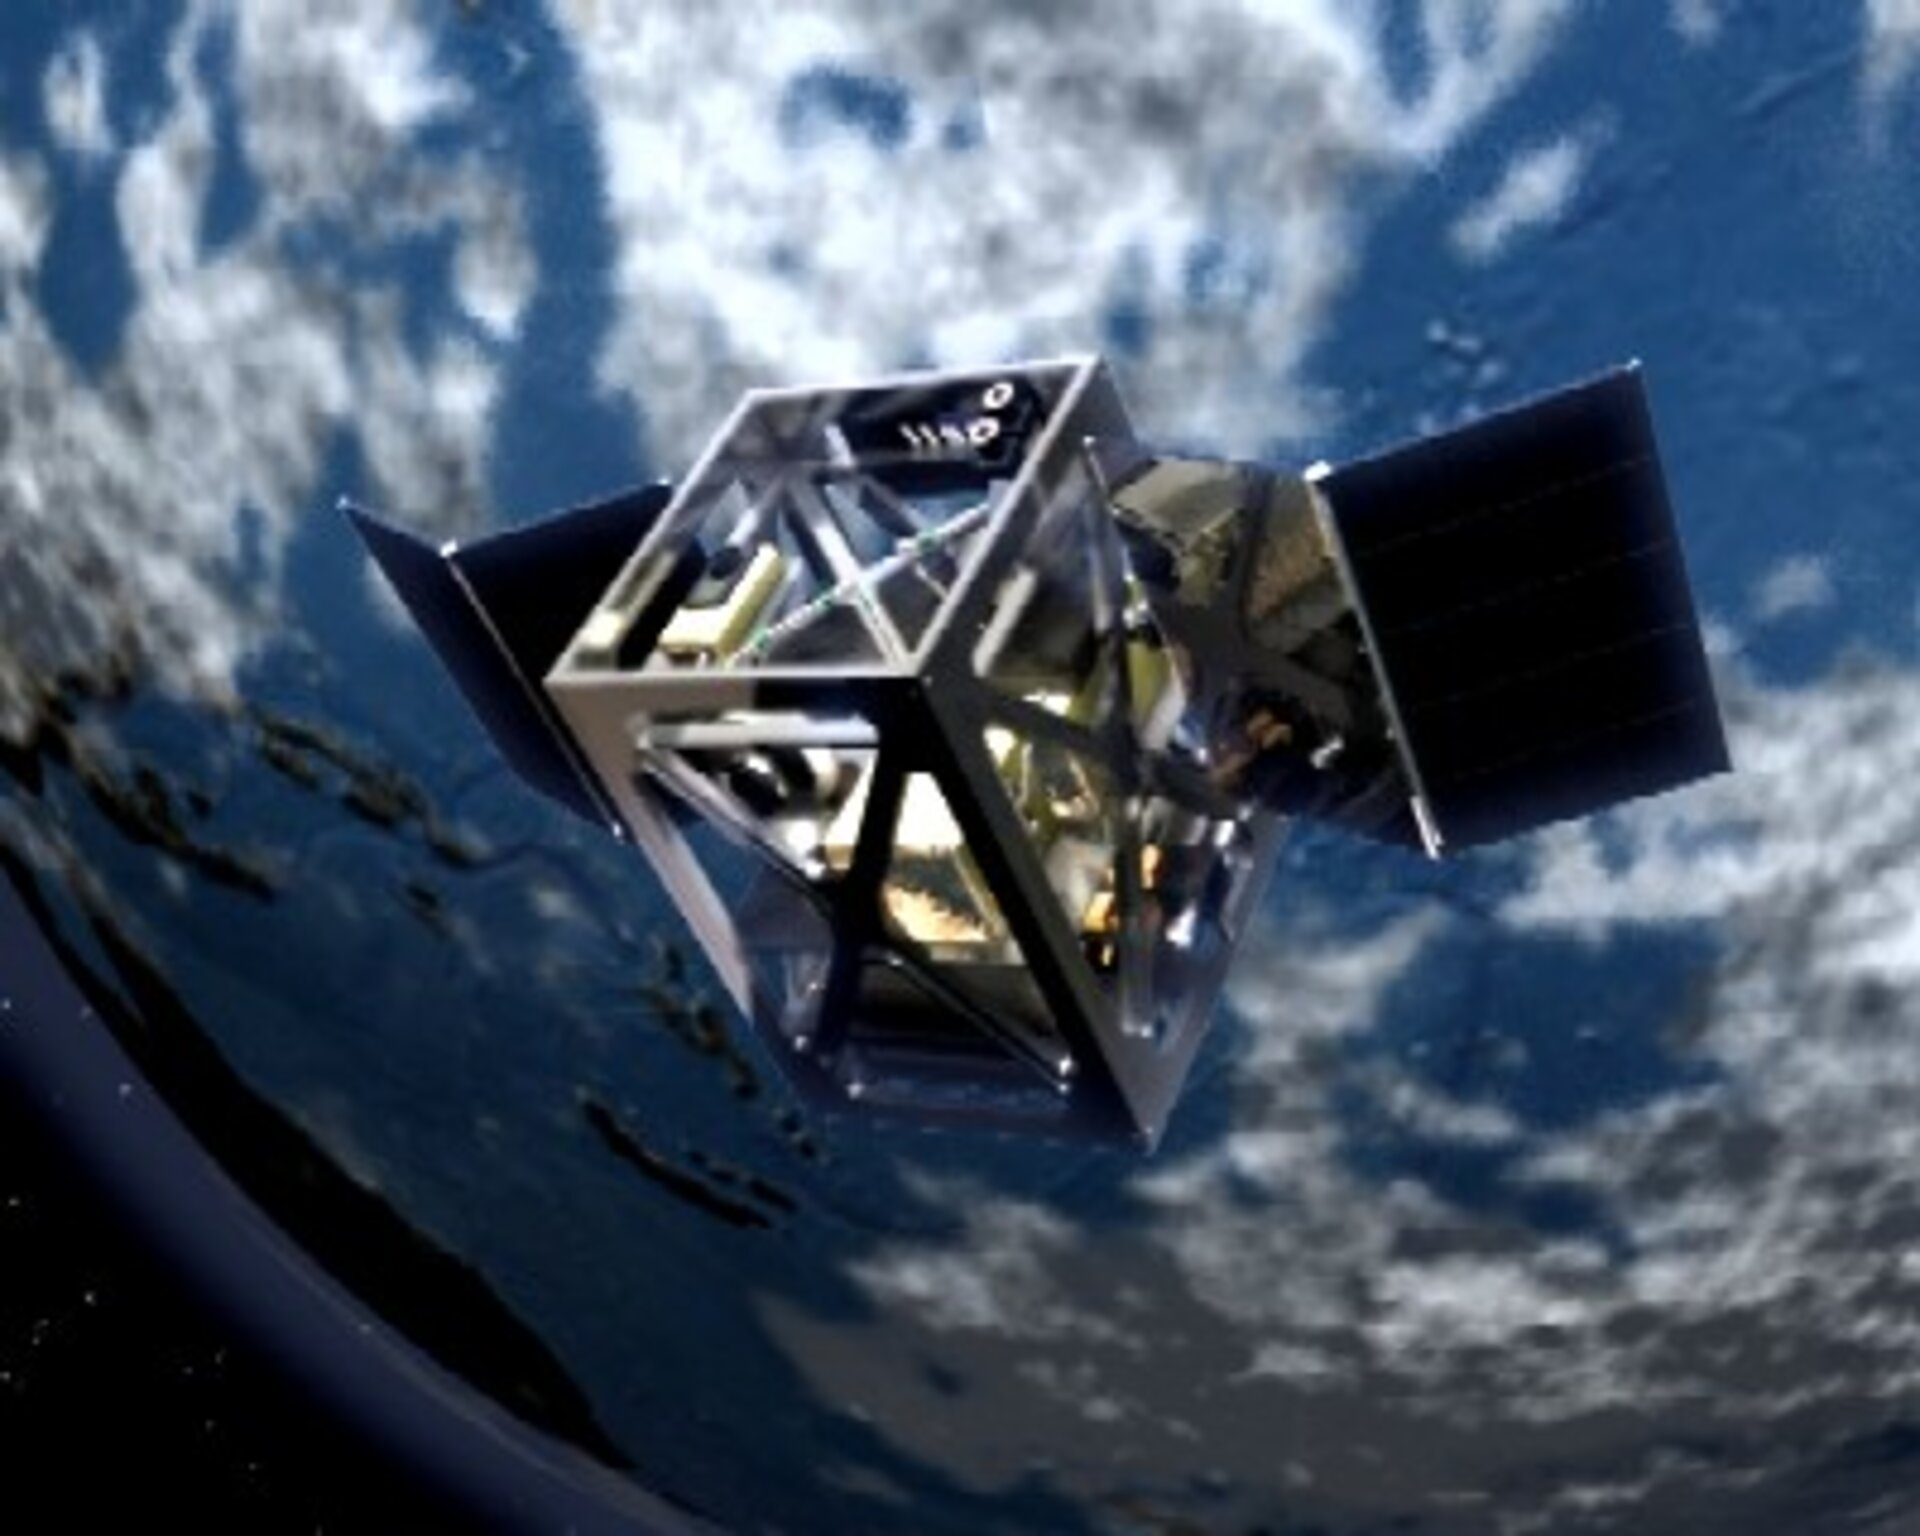 Artist's impression of the satellite imagined by SSETI students